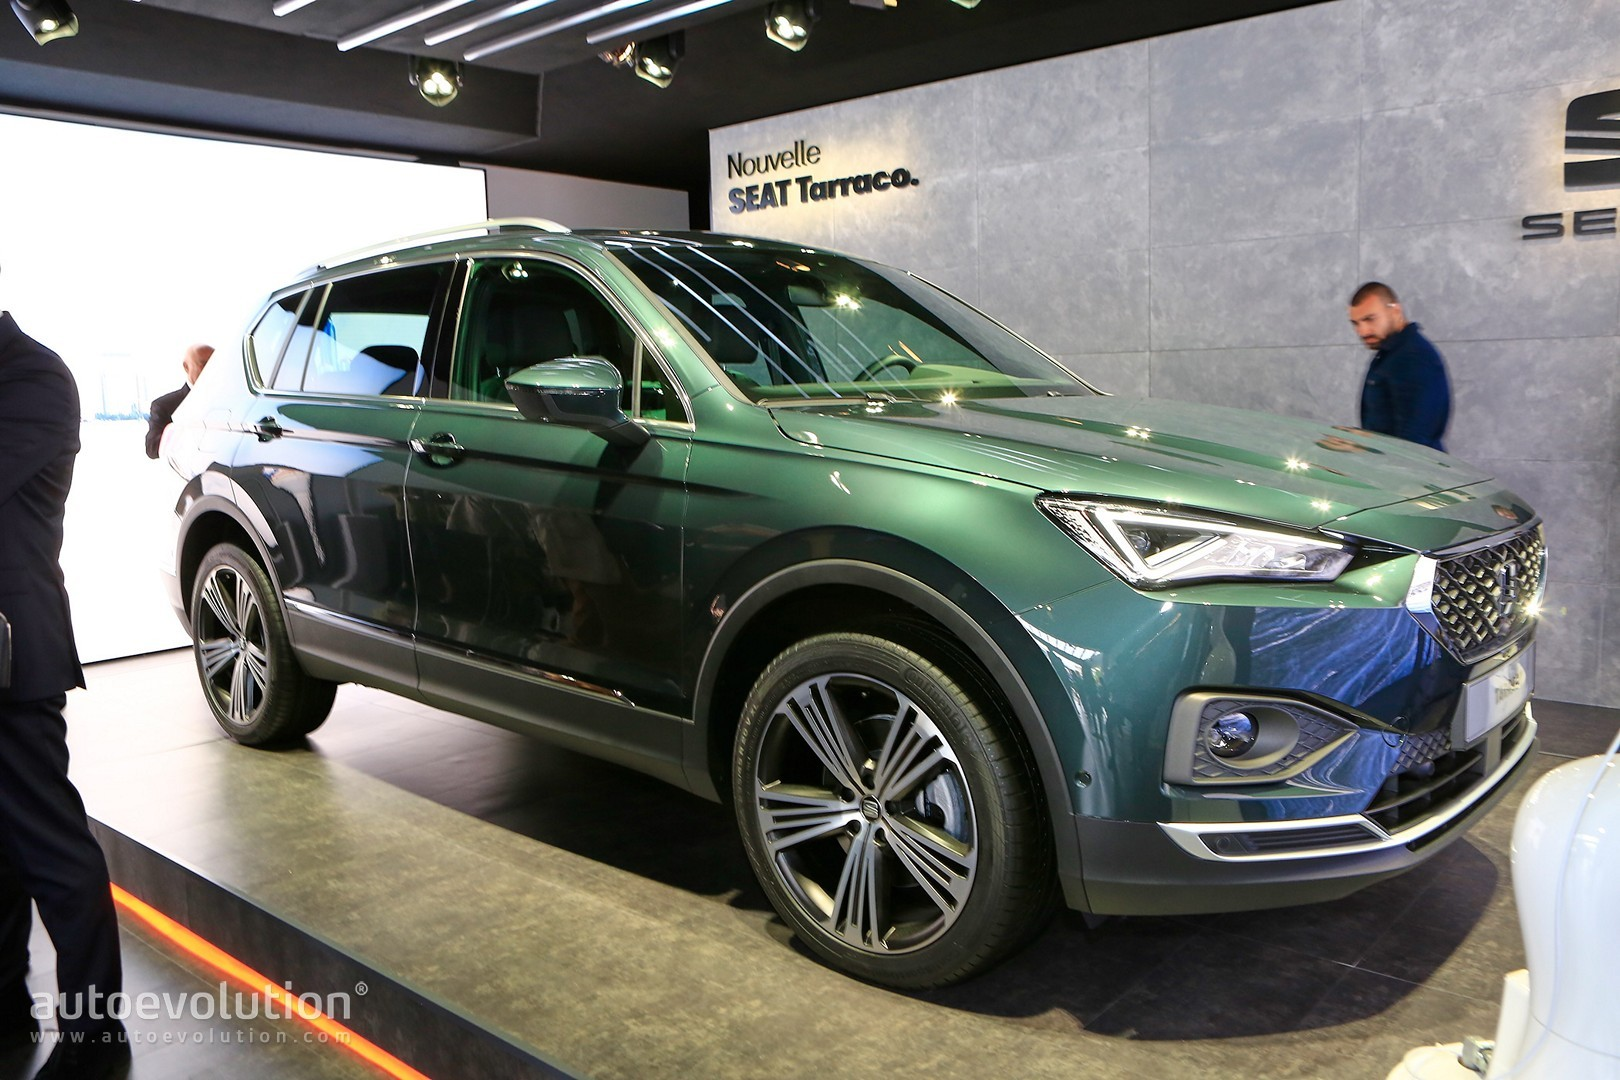 volkswagen starts production of seat tarraco in wolfsburg. Black Bedroom Furniture Sets. Home Design Ideas